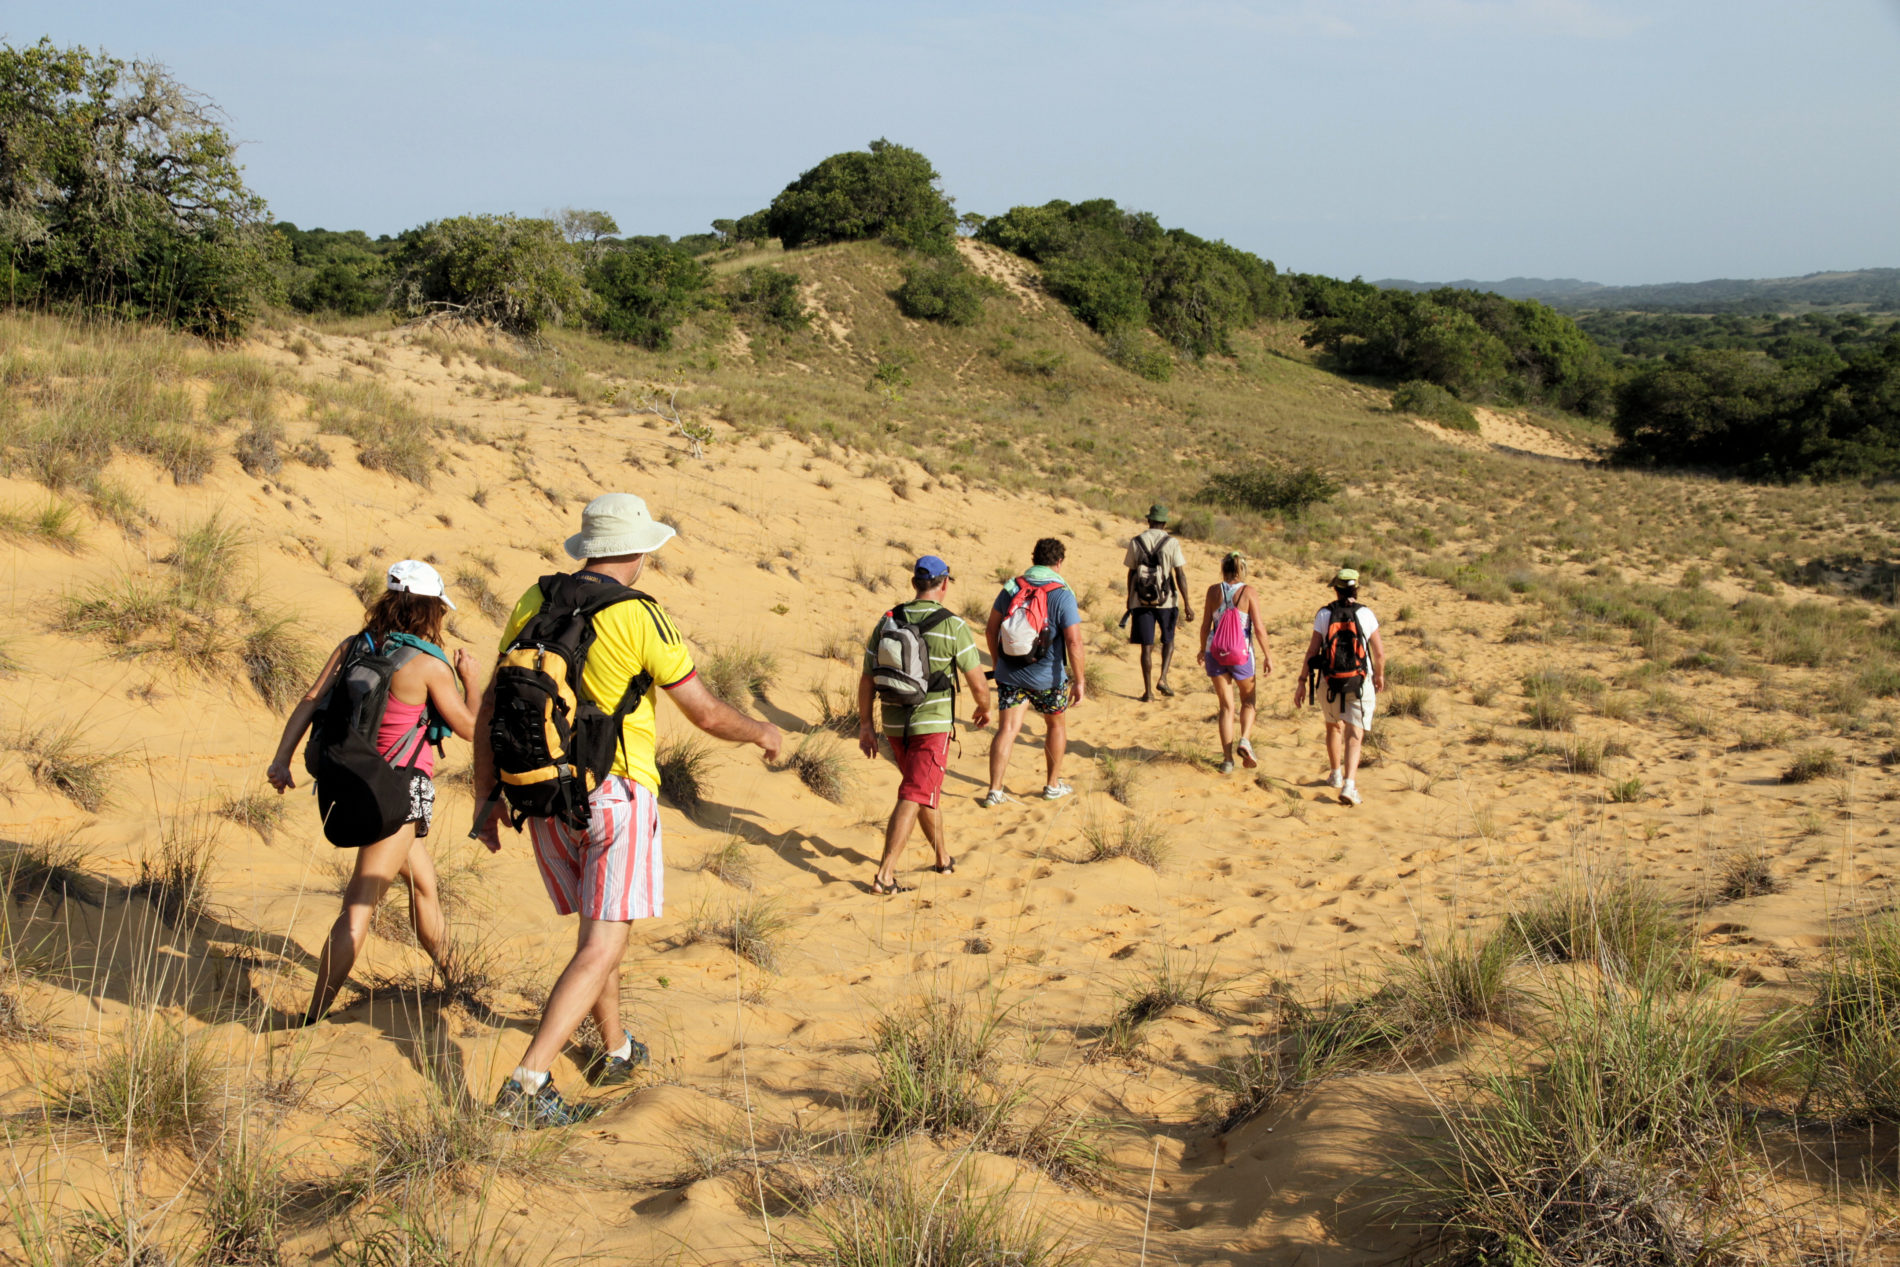 Guided hikes in Kosi Bay Mouth area, Utshwayelo Lodge & Camp